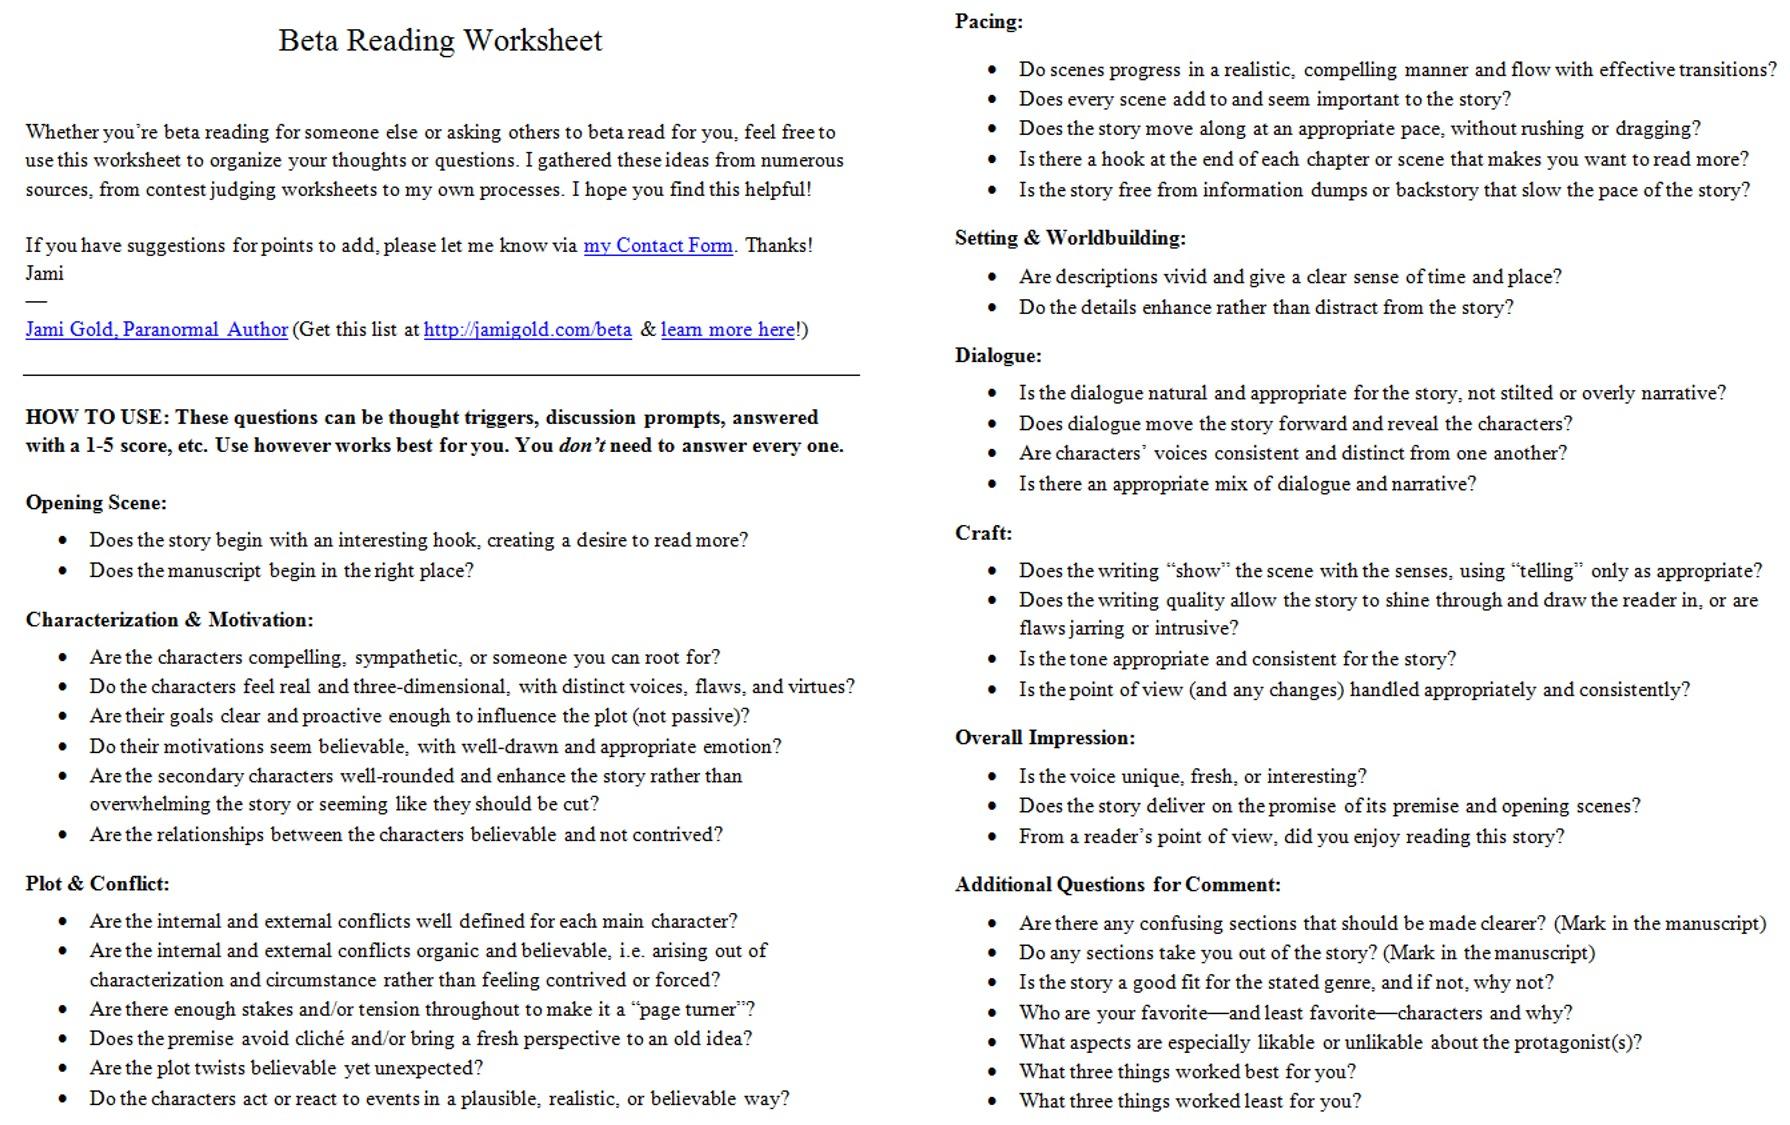 Aldiablosus  Stunning Worksheets For Writers  Jami Gold Paranormal Author With Luxury Screen Shot Of The Twopage Beta Reading Worksheet With Extraordinary Vba Copy Worksheet To New Workbook Also Third Grade Reading Comprehension Worksheets Free In Addition Language Arts Th Grade Worksheets And High School Reading Worksheets As Well As Story Comprehension Worksheets Additionally Direct Object Pronouns Worksheet From Jamigoldcom With Aldiablosus  Luxury Worksheets For Writers  Jami Gold Paranormal Author With Extraordinary Screen Shot Of The Twopage Beta Reading Worksheet And Stunning Vba Copy Worksheet To New Workbook Also Third Grade Reading Comprehension Worksheets Free In Addition Language Arts Th Grade Worksheets From Jamigoldcom